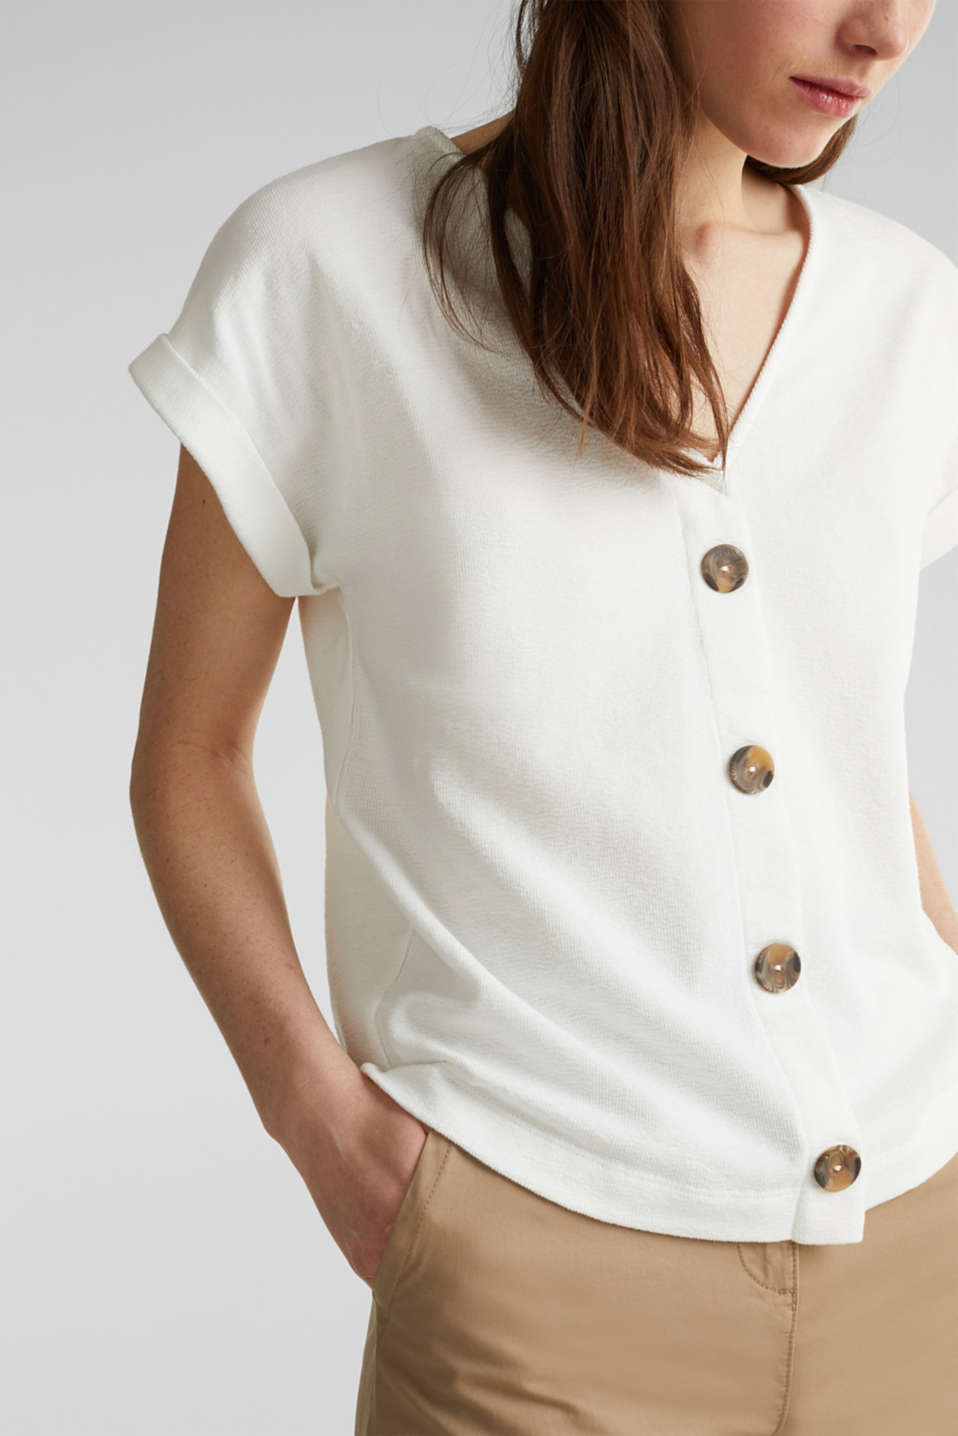 Textured T-shirt with button placket, 100% cotton, OFF WHITE, detail image number 2